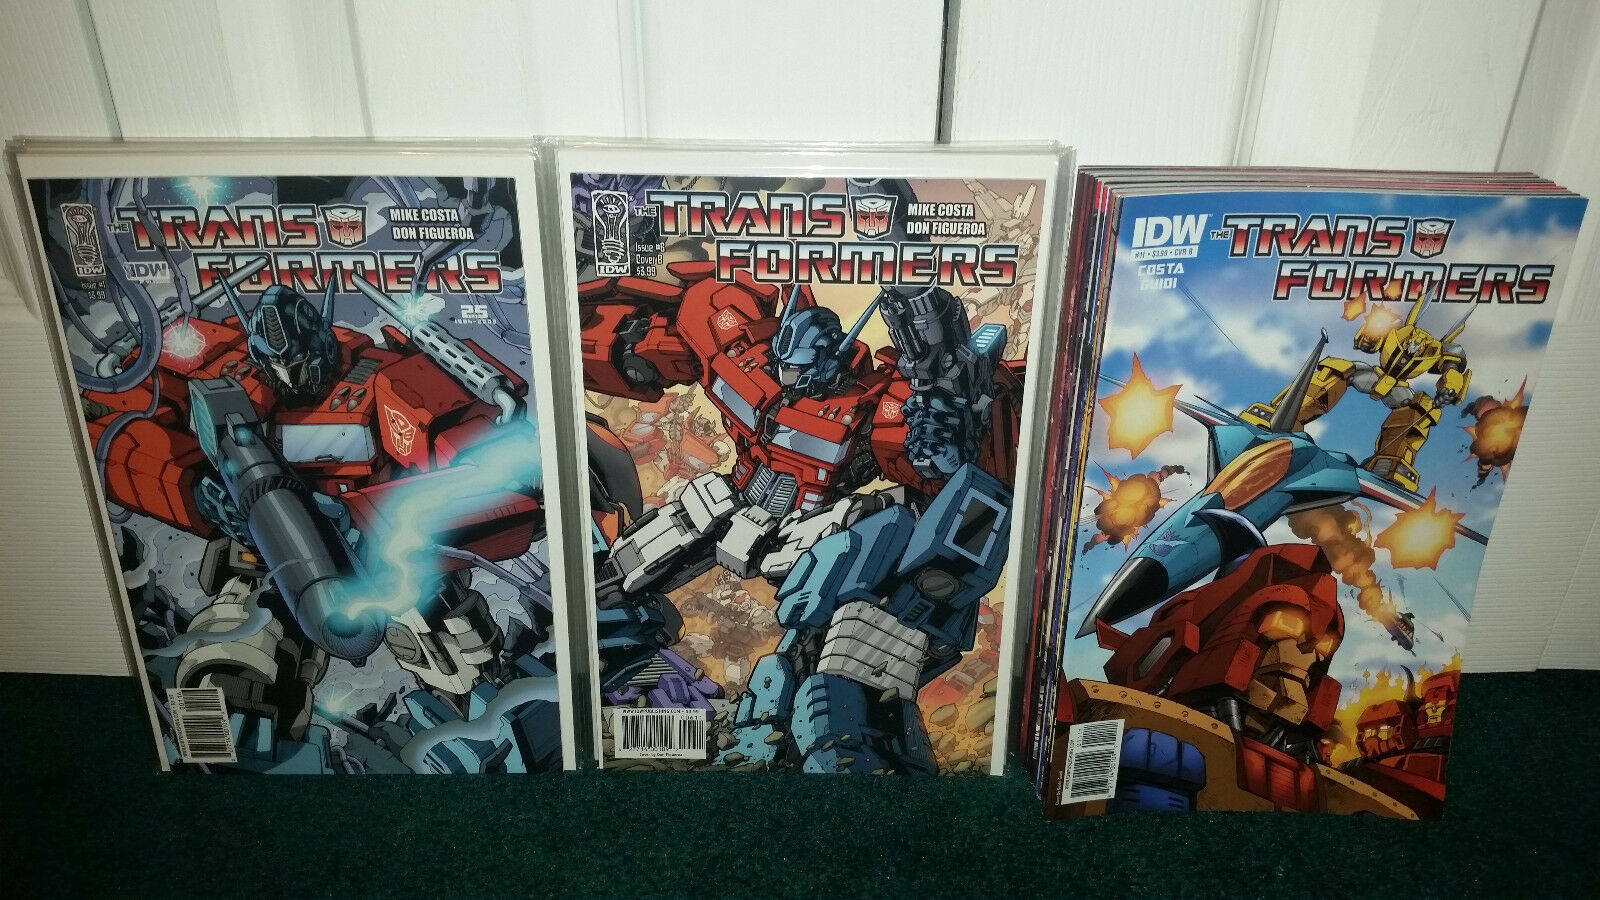 IDW Transformers  1-9 & 11-31 All B Covers Chaos + The Death Of Optimus Prime